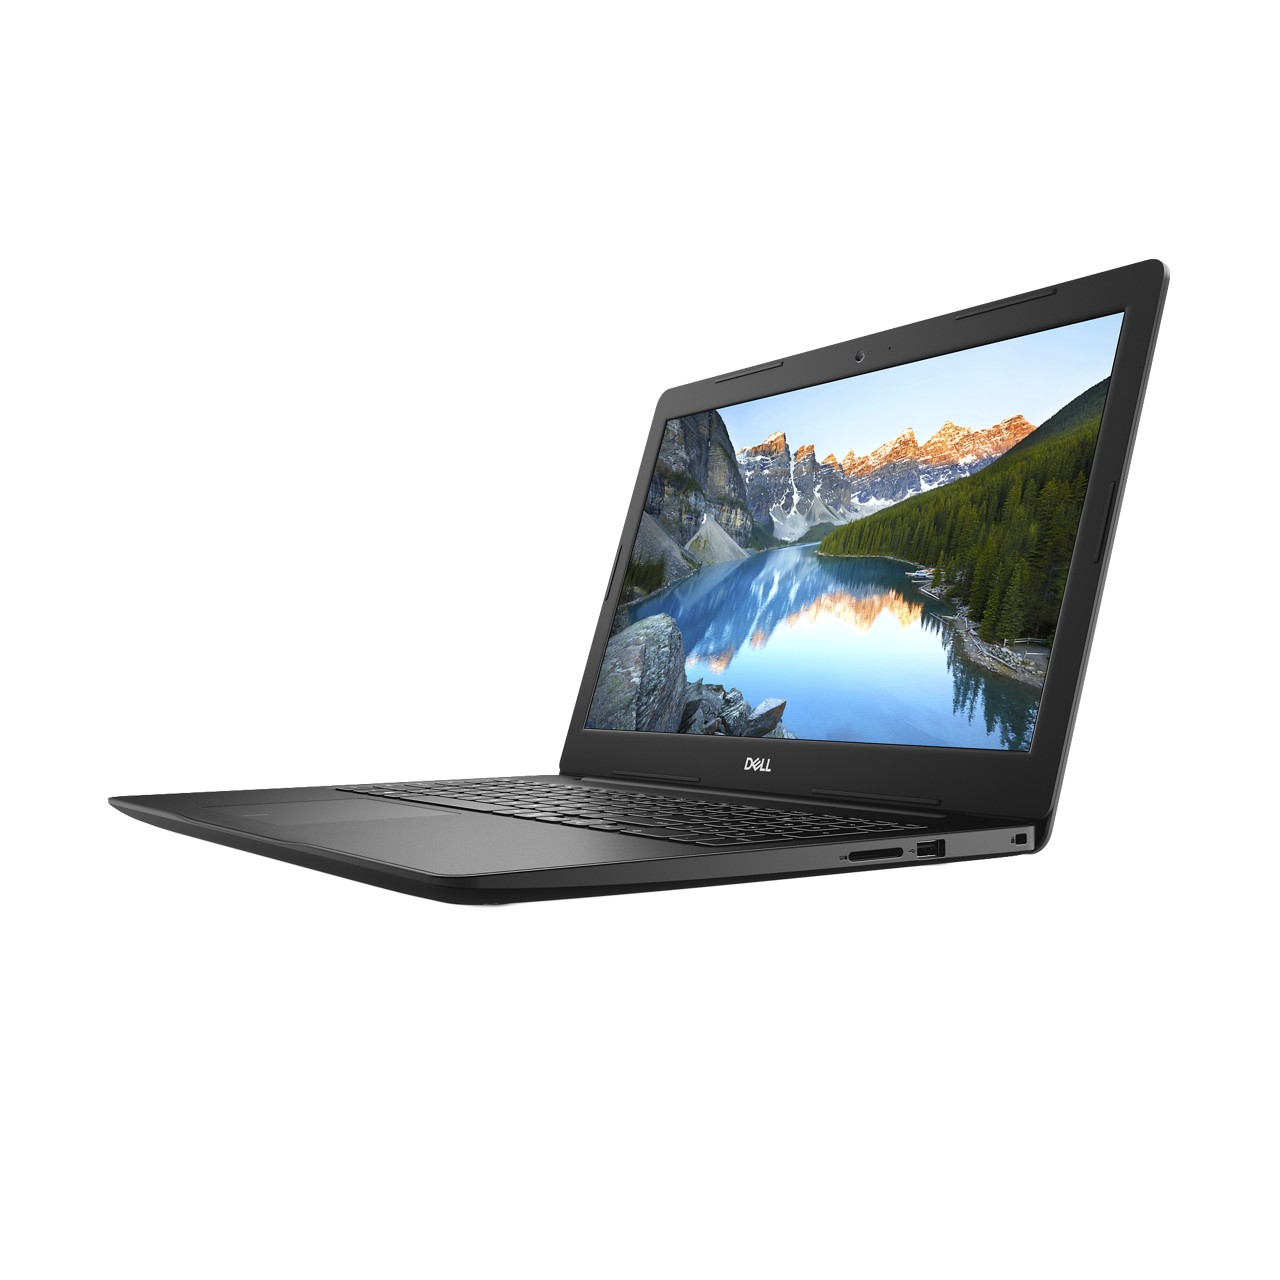 Dell Inspiron 15 3585 Laptop 15 6